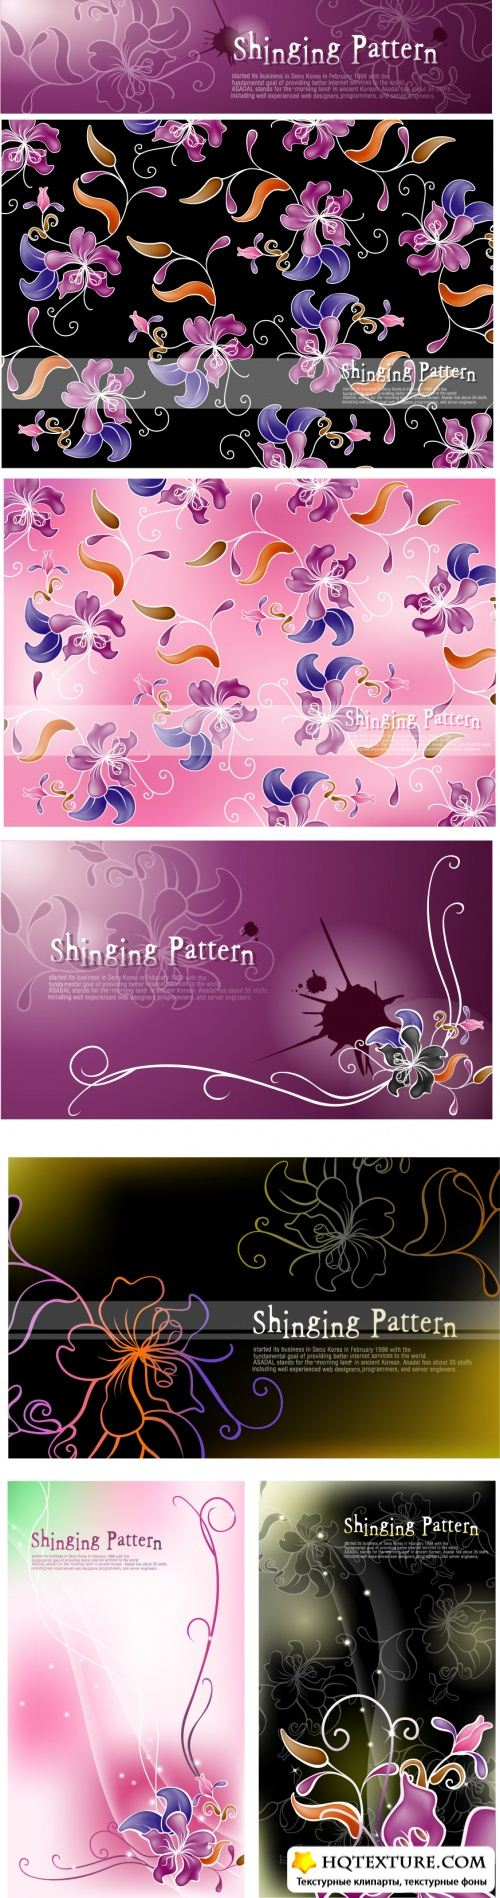 Shinging Pattern